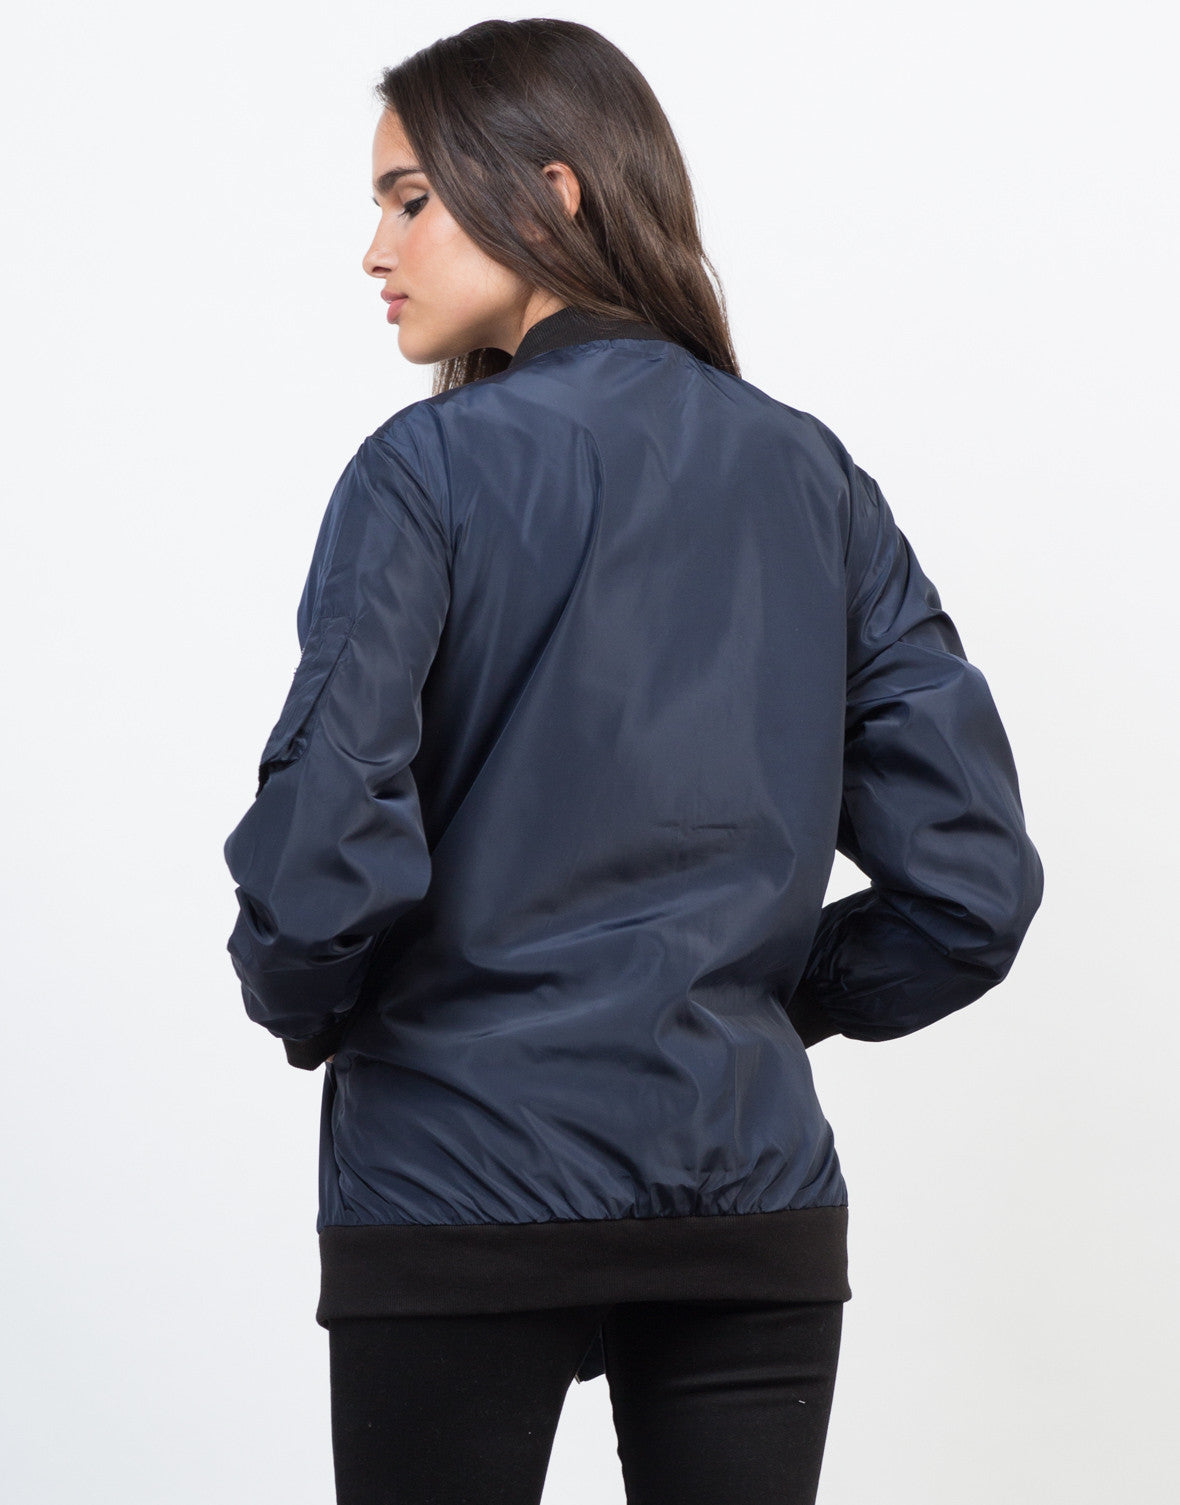 Back View of Longline Bomber Jacket